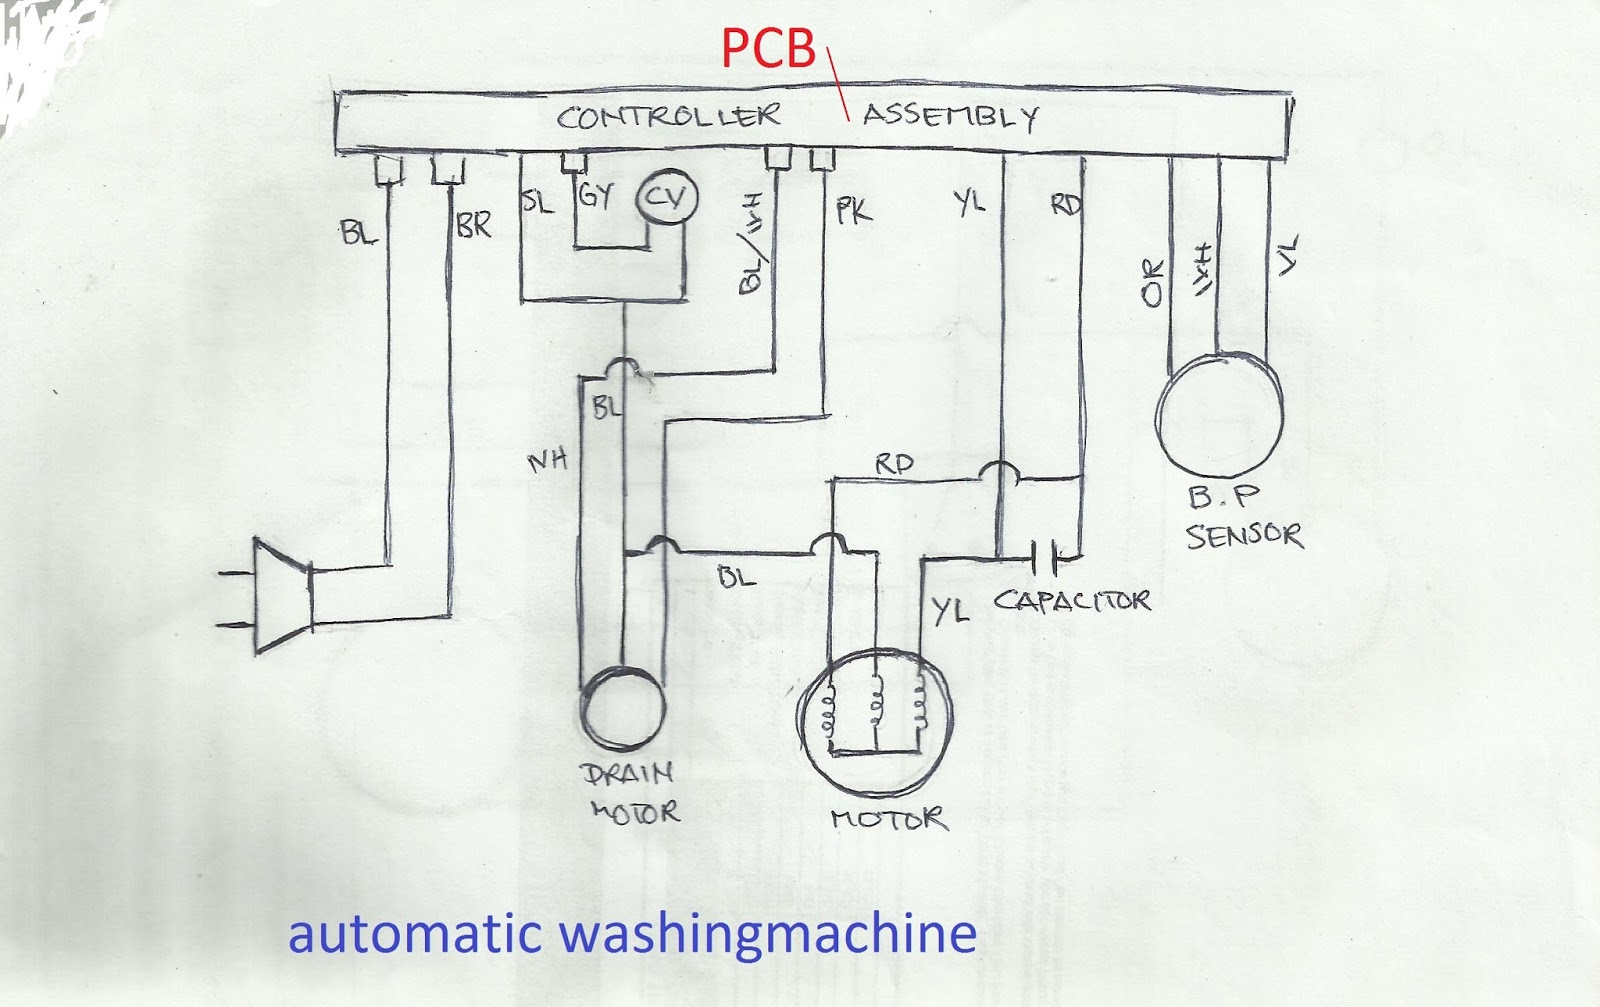 Refrigeration and air conditioning repair wiring diagram of wiring diagram of compressor with starting capacitor automatic washing machine diagram swarovskicordoba Gallery